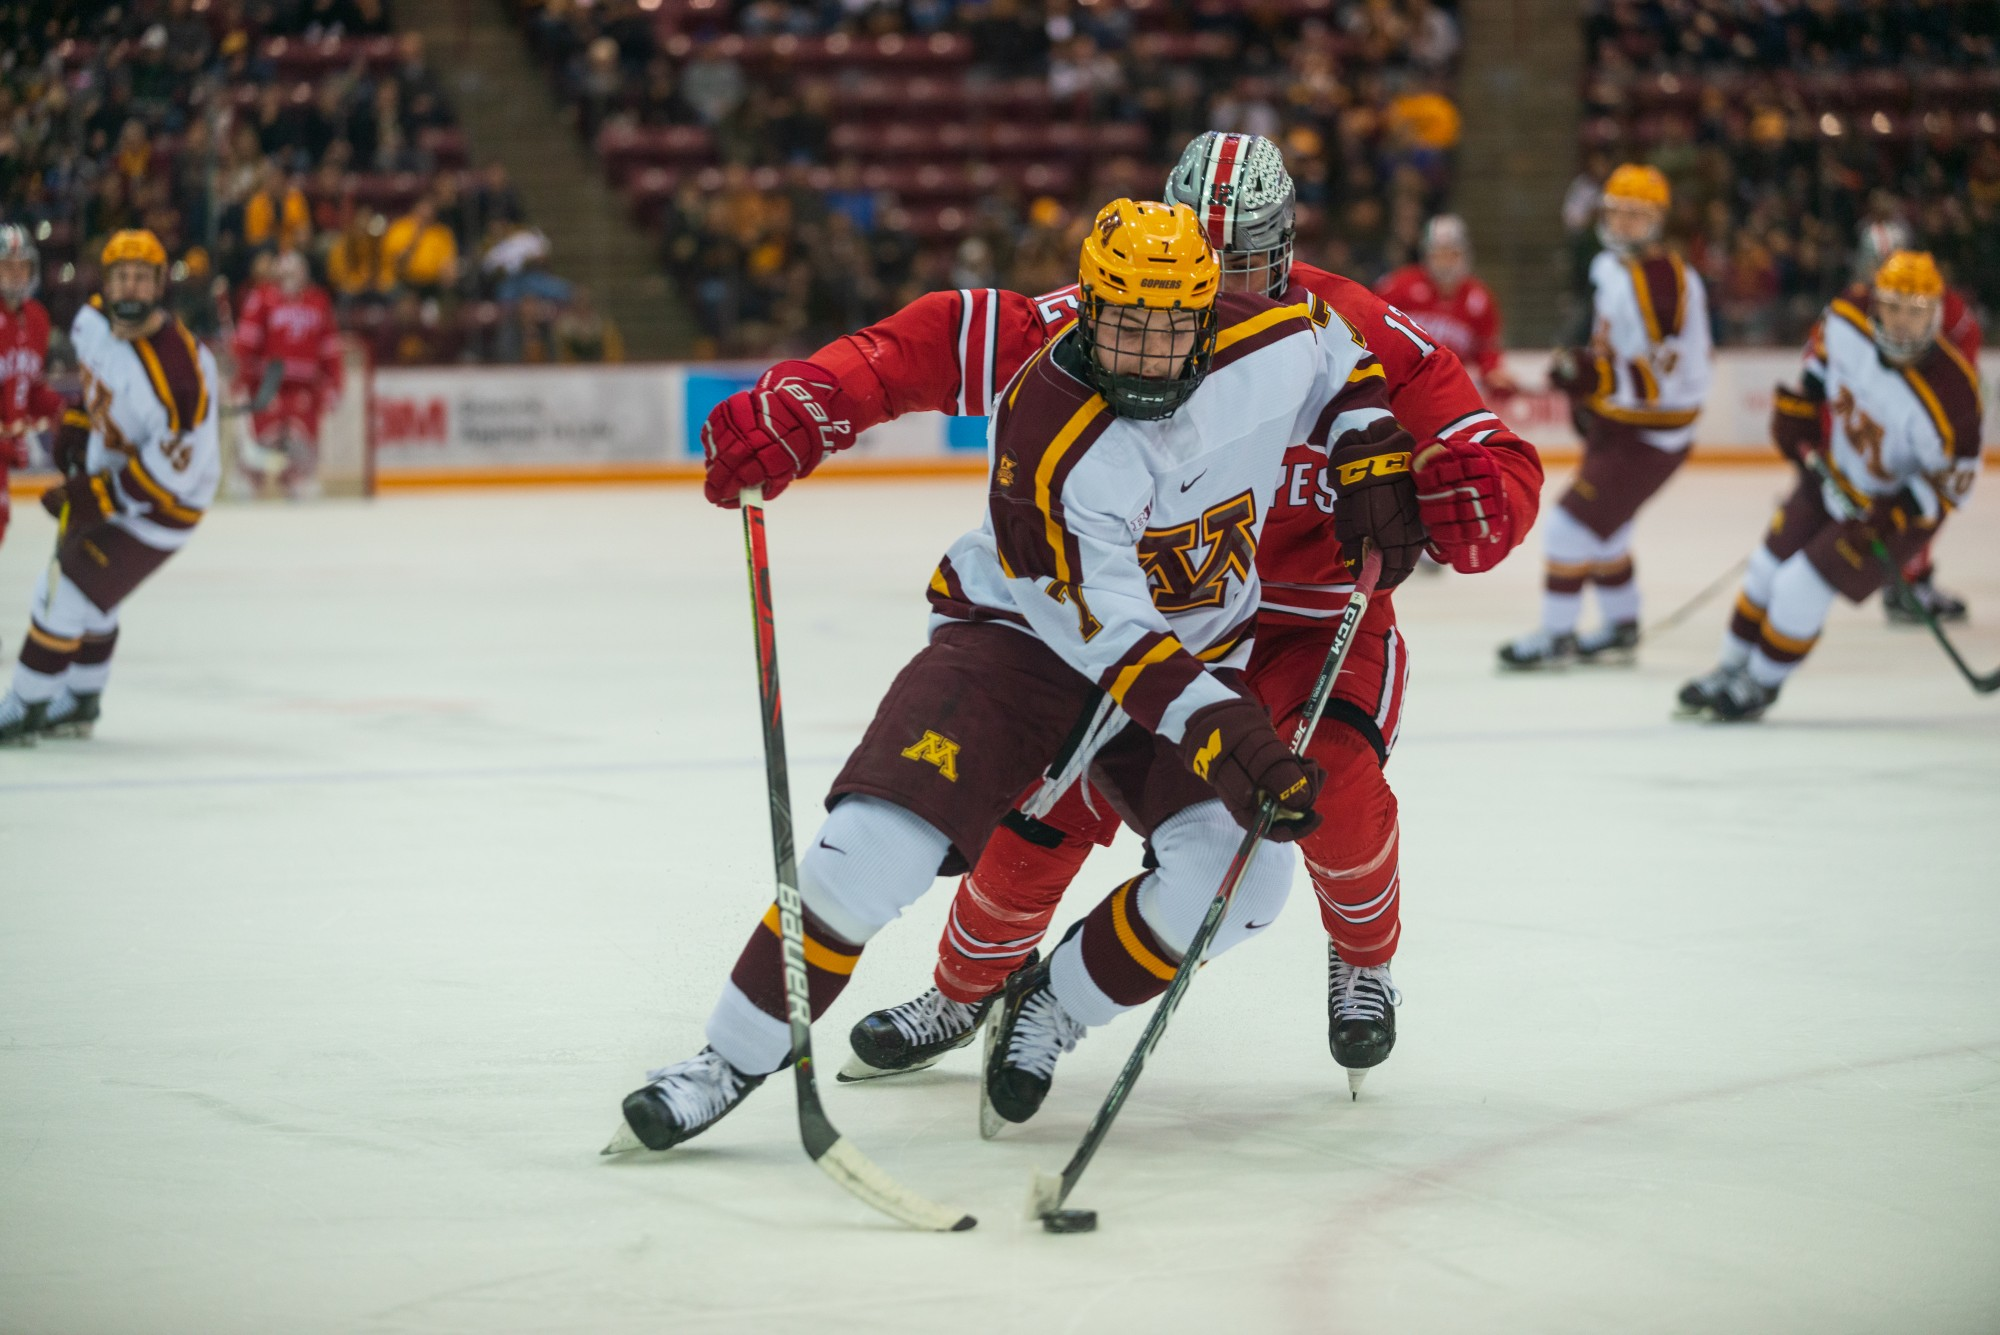 Gophers Forward Brannon McManus protects the puck from a defender at 3M Arena at Mariucci on Friday, Jan. 24, 2020. The Gophers ended the night with a 6-3 victory over Ohio State.